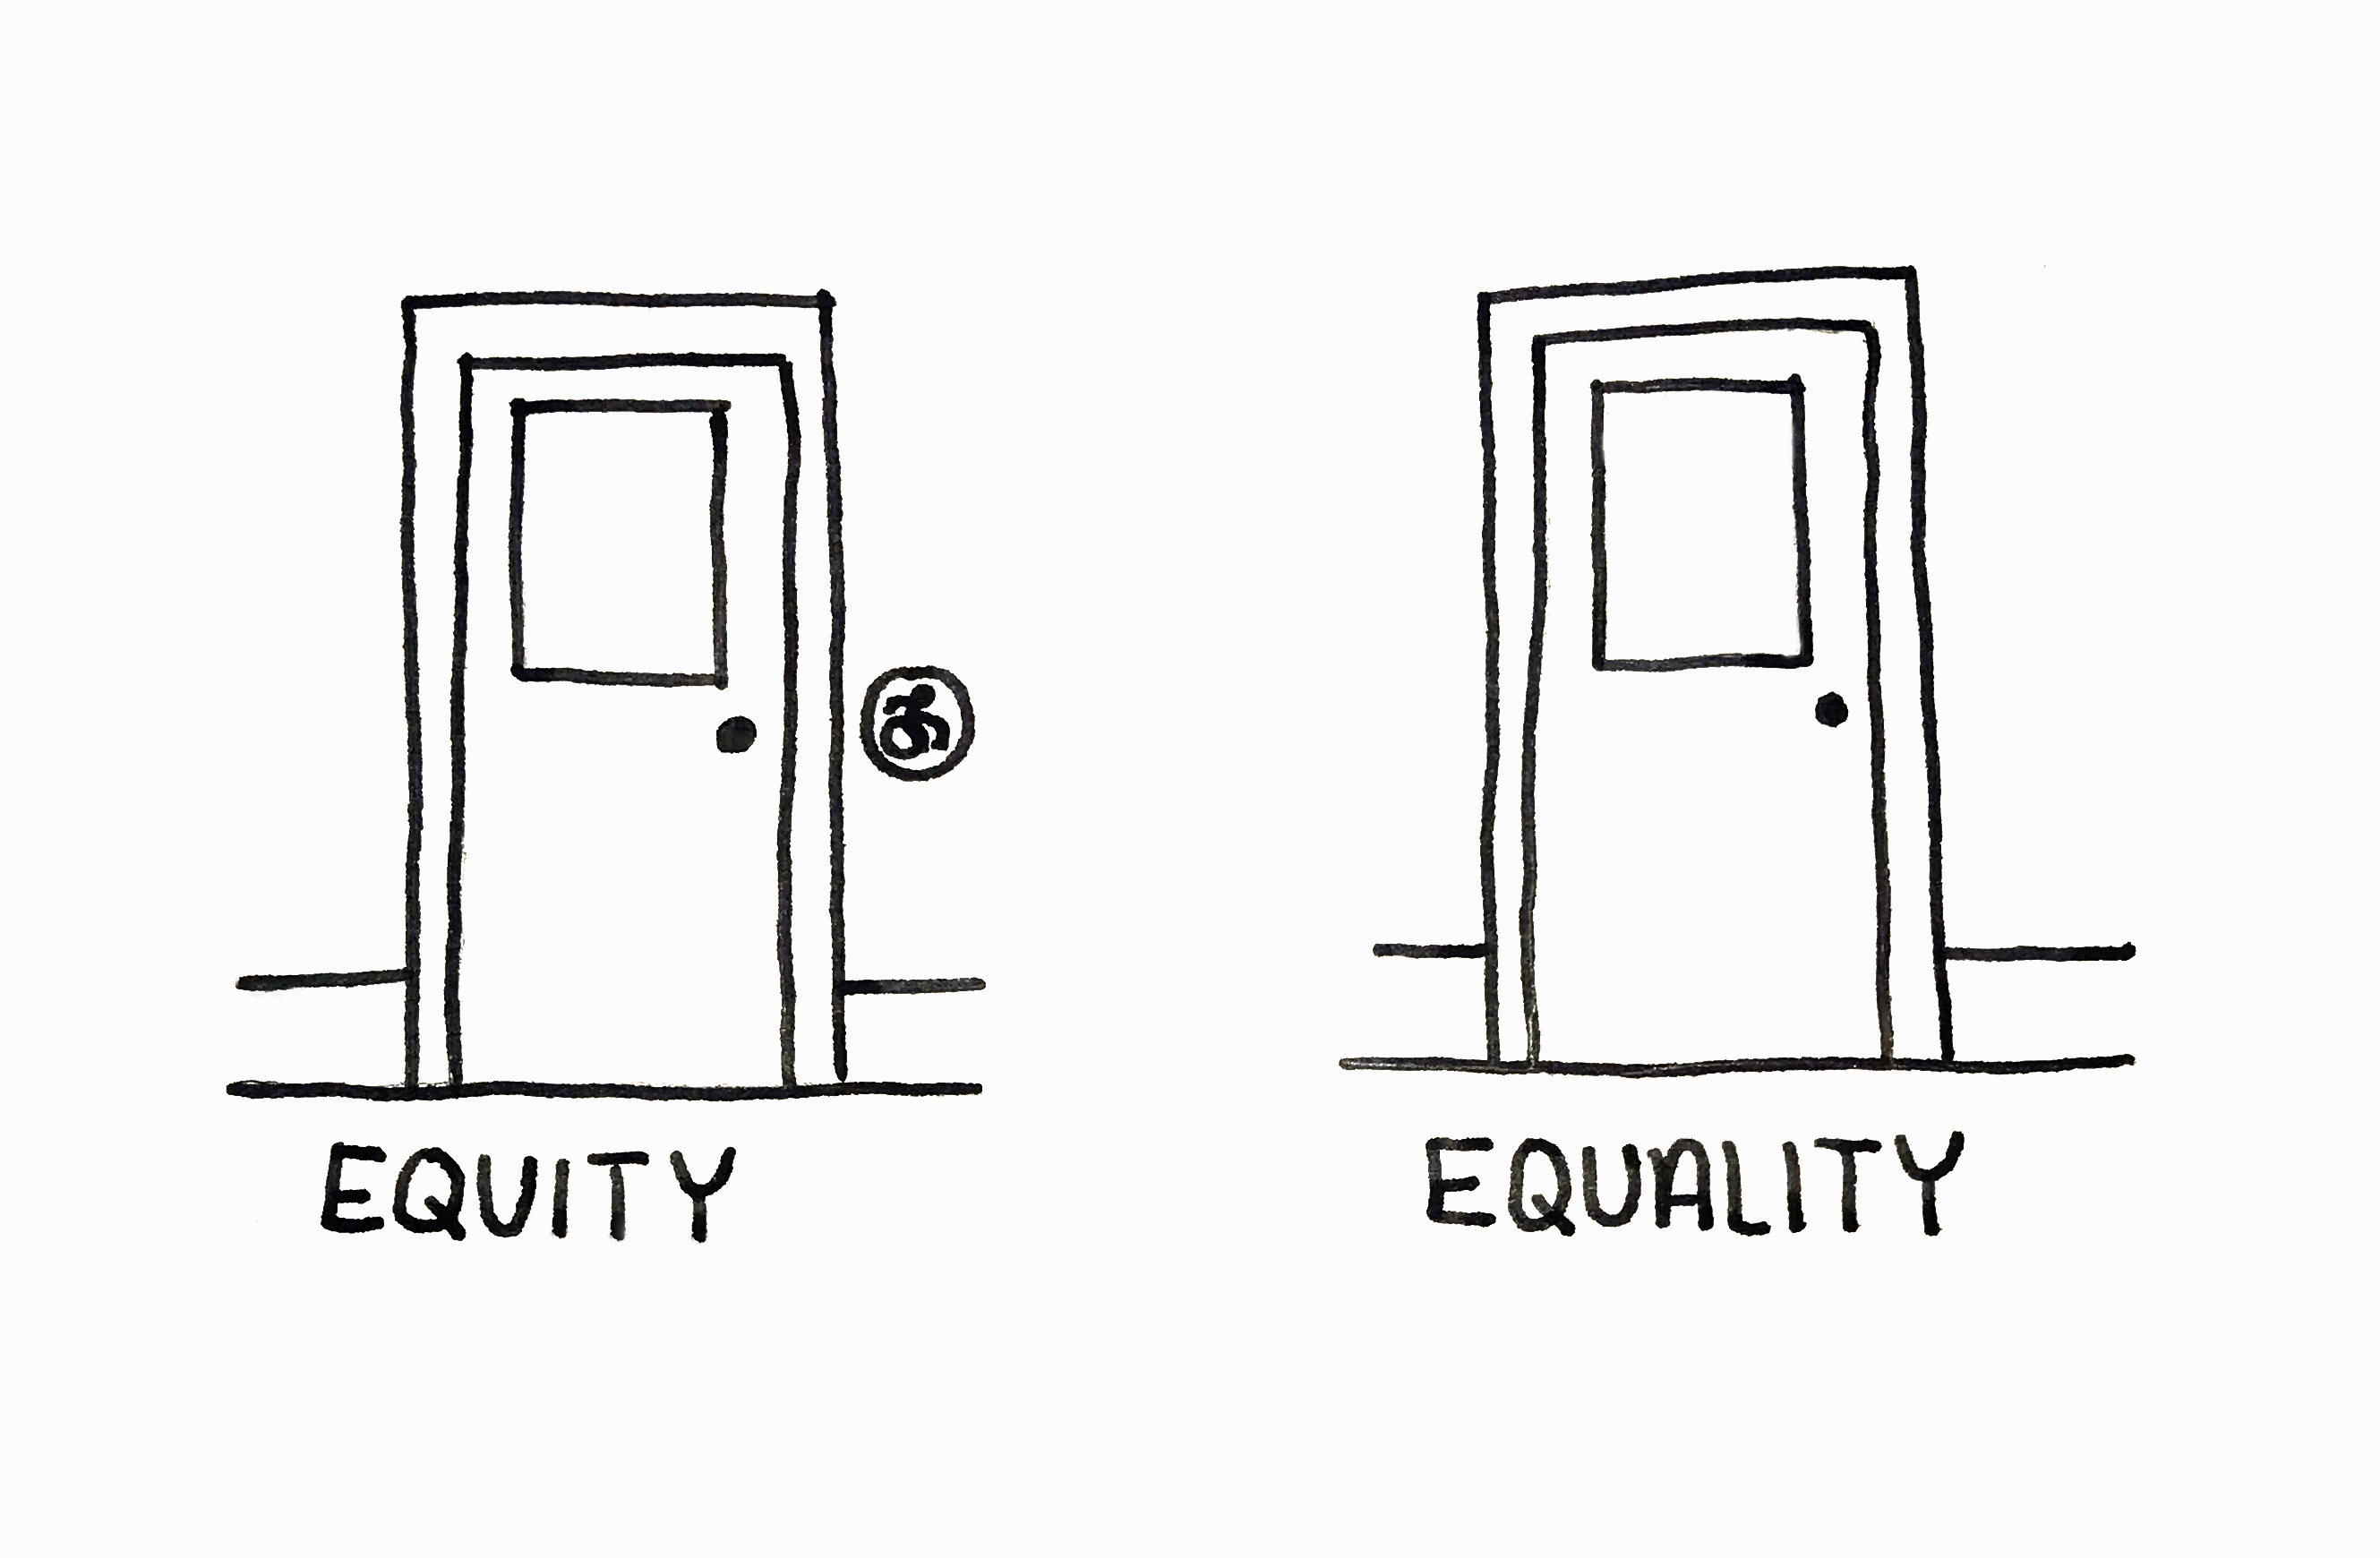 An illustration of two doors: the one on the left has the caption 'Equity' and the one on the right has the caption 'equality'. The left hand door has a button to open the door, the right door does not.